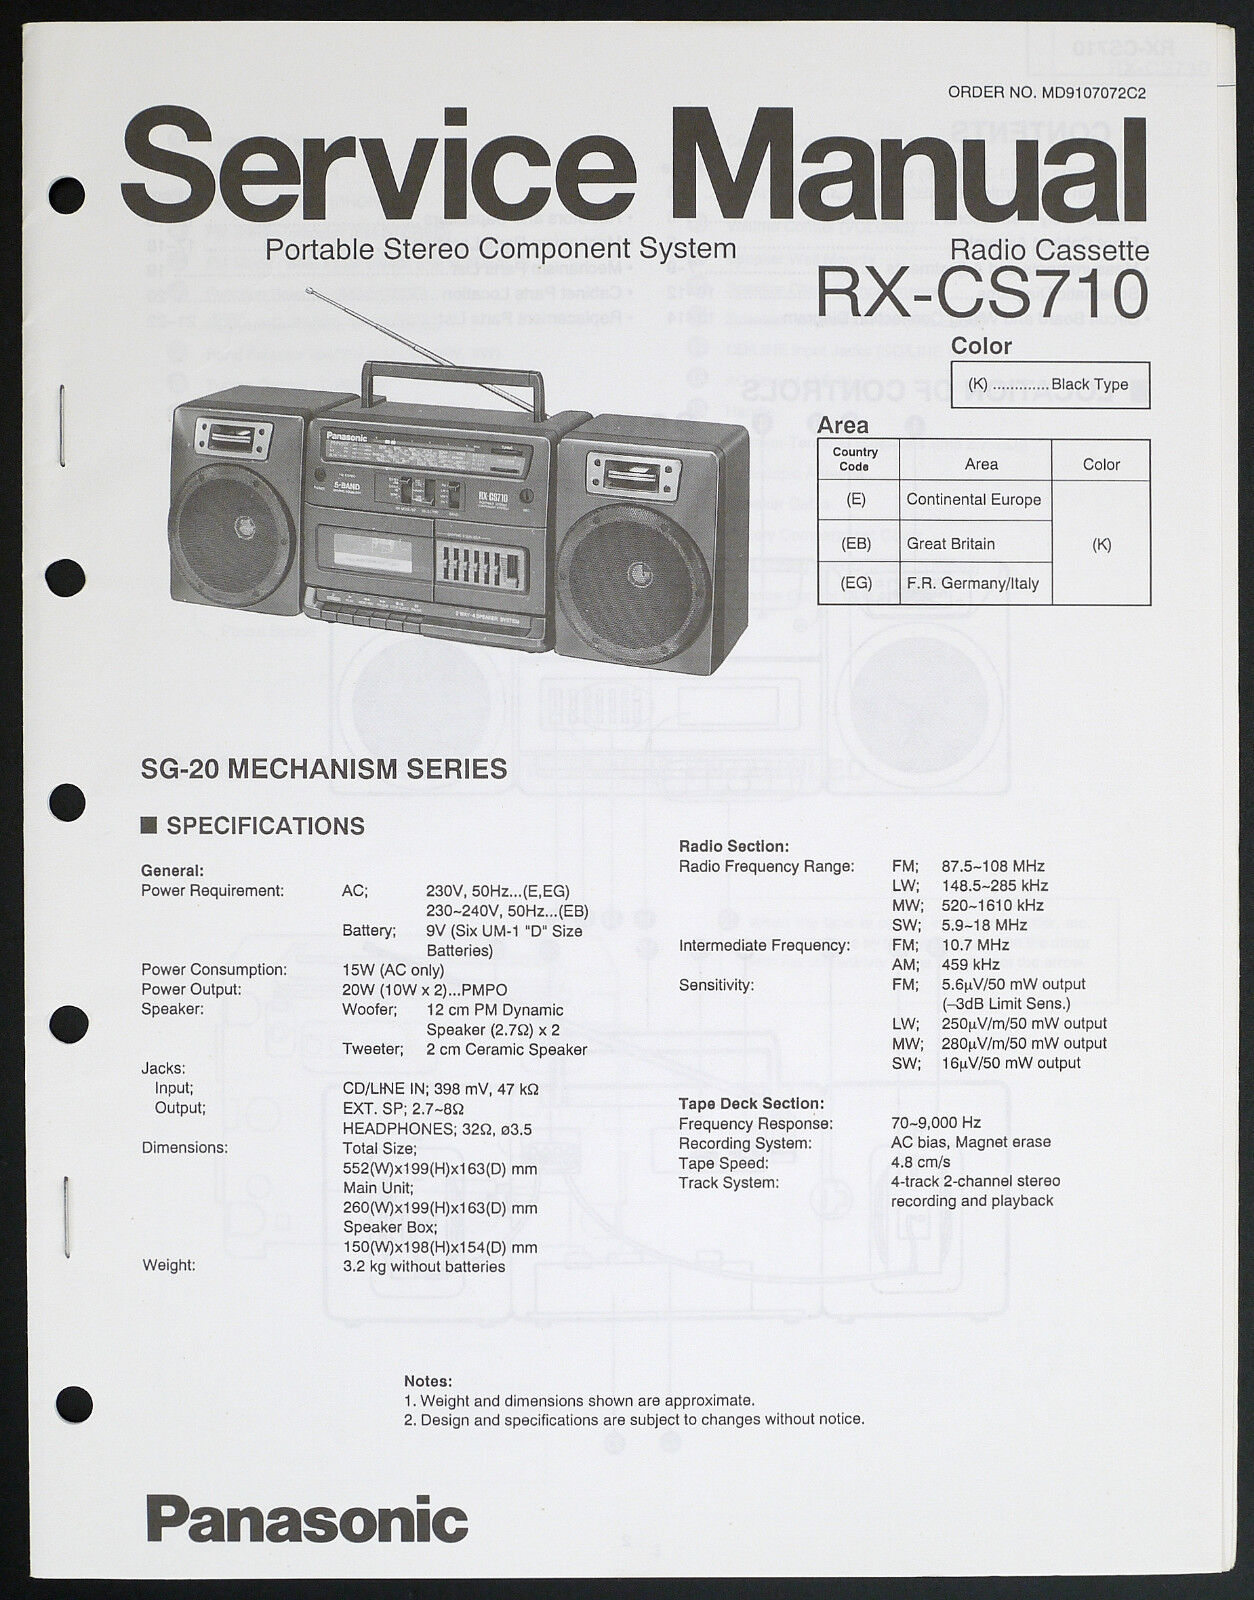 Panasonic RX-CS710 Original Stereo Component System Service Manual/Diagram  o191 1 of 1Only 1 available ...